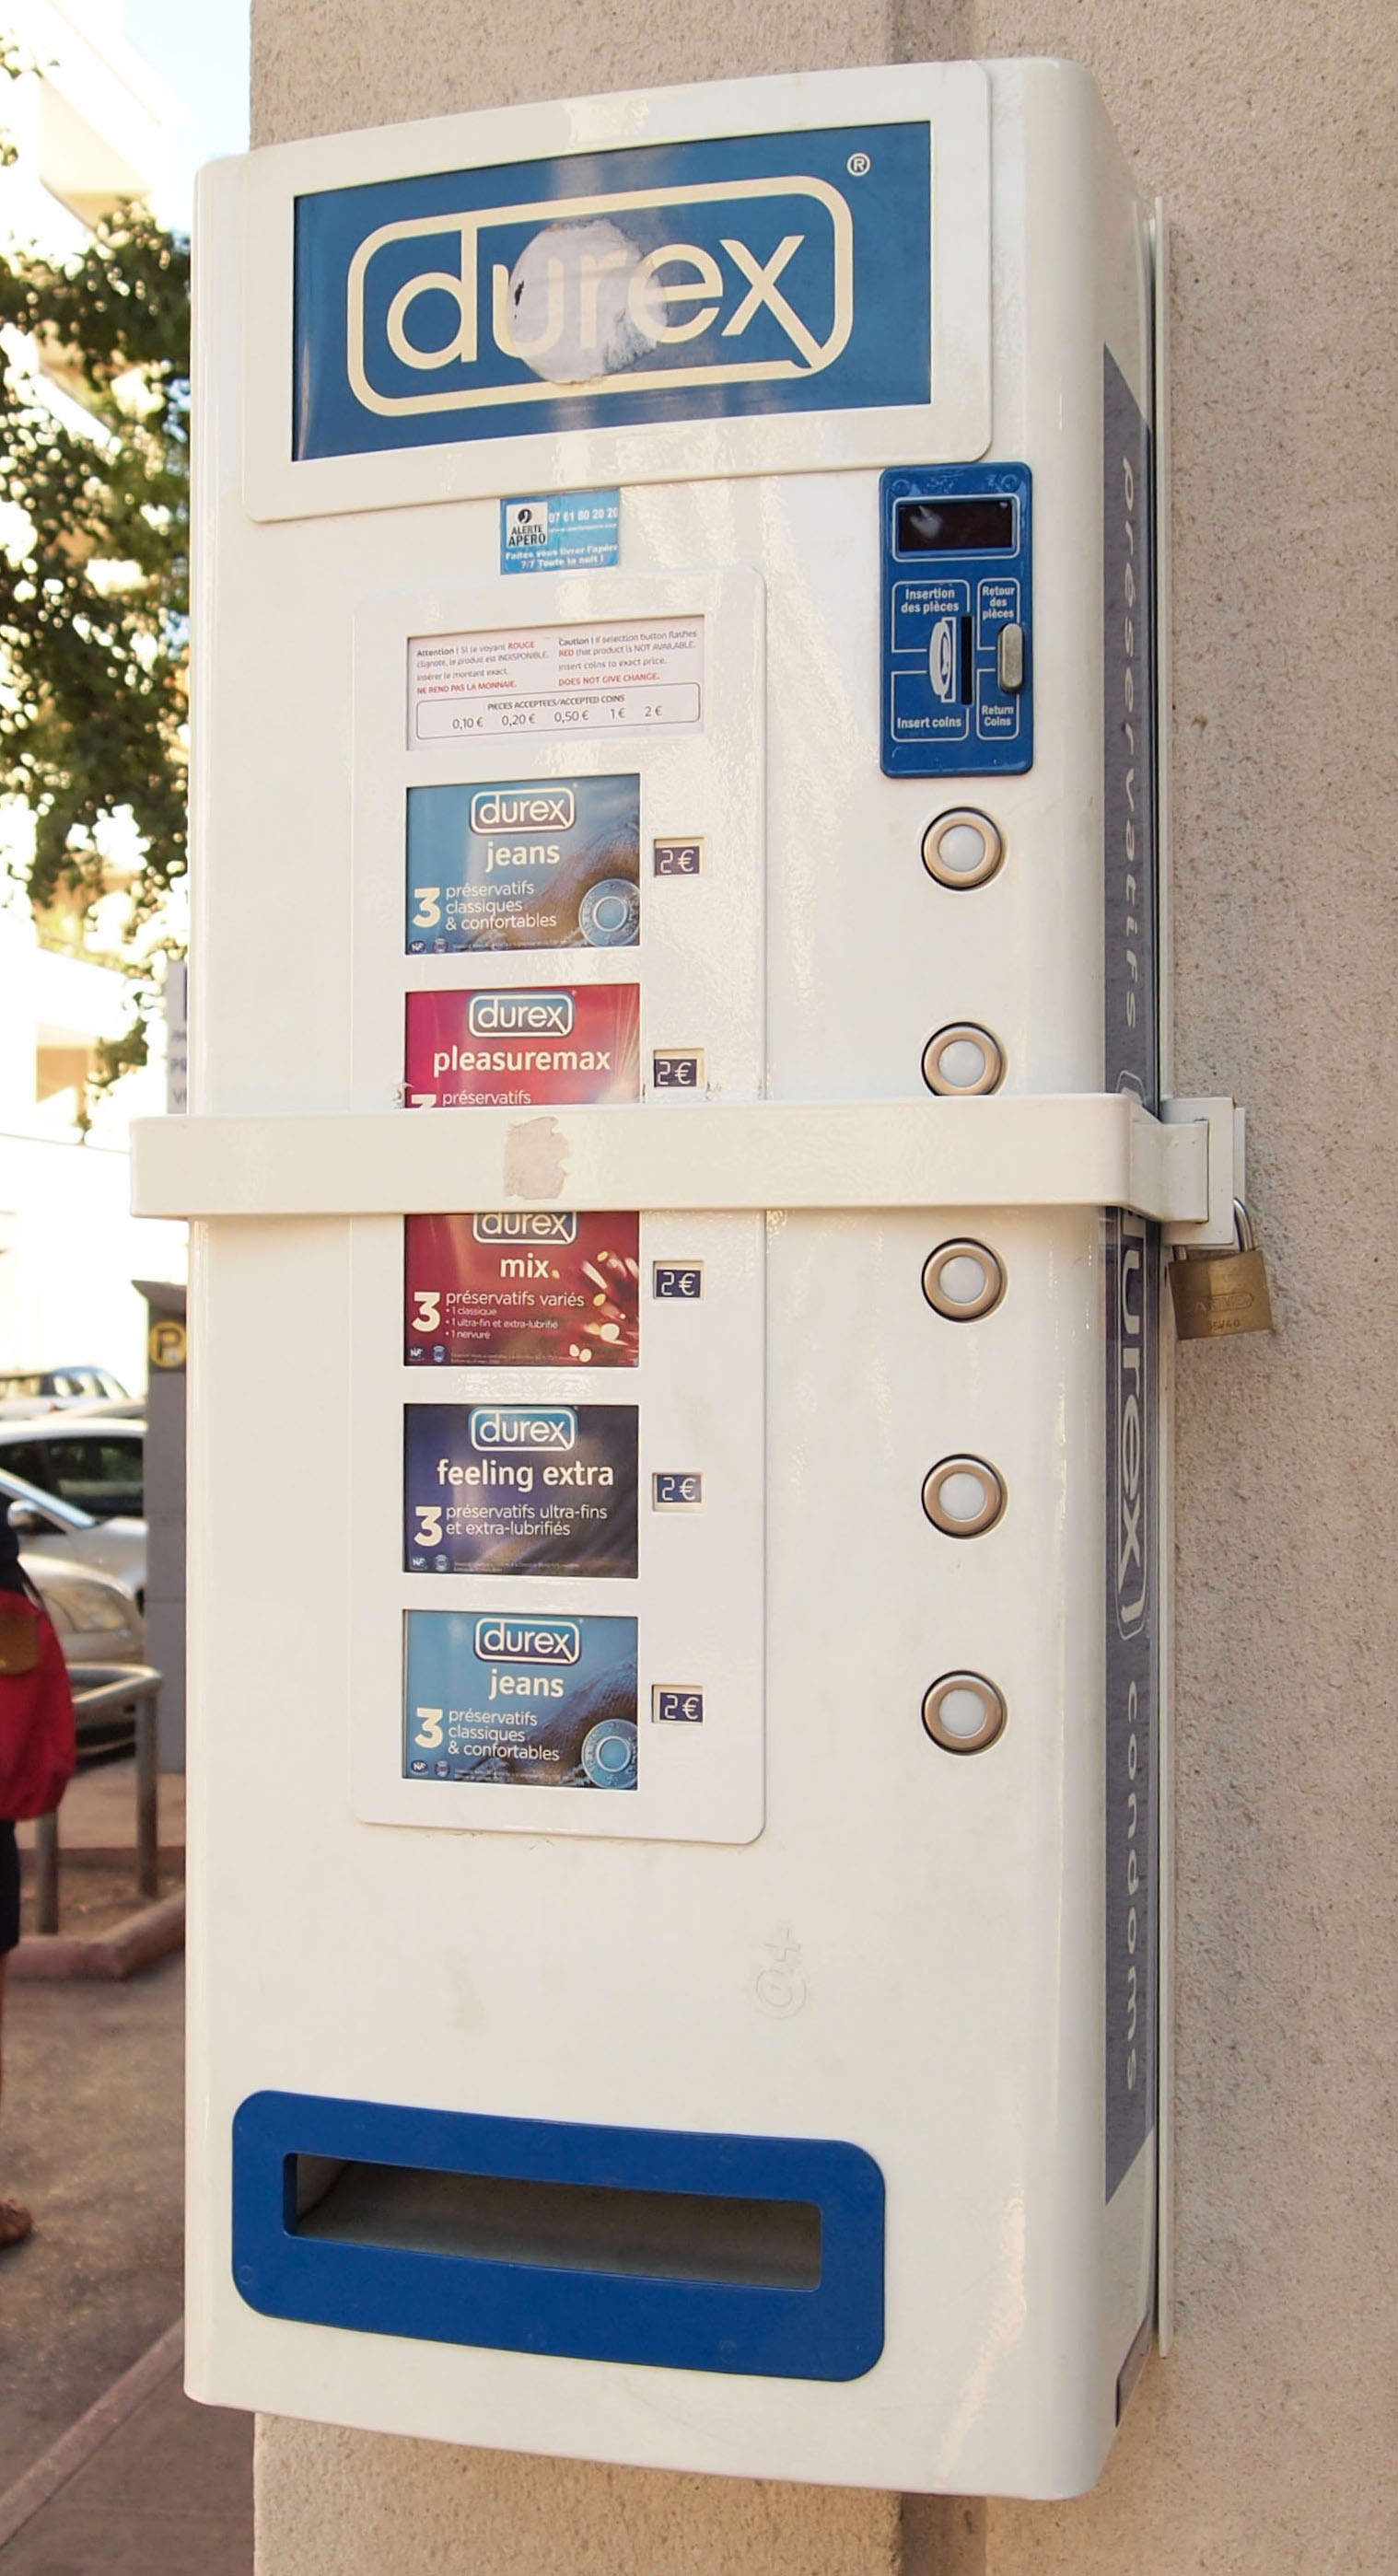 condom dispenser in highschool But the keplero high school vowed thursday to go ahead with its experiment appeared divided thursday about whether condom dispensers in their school were useful.